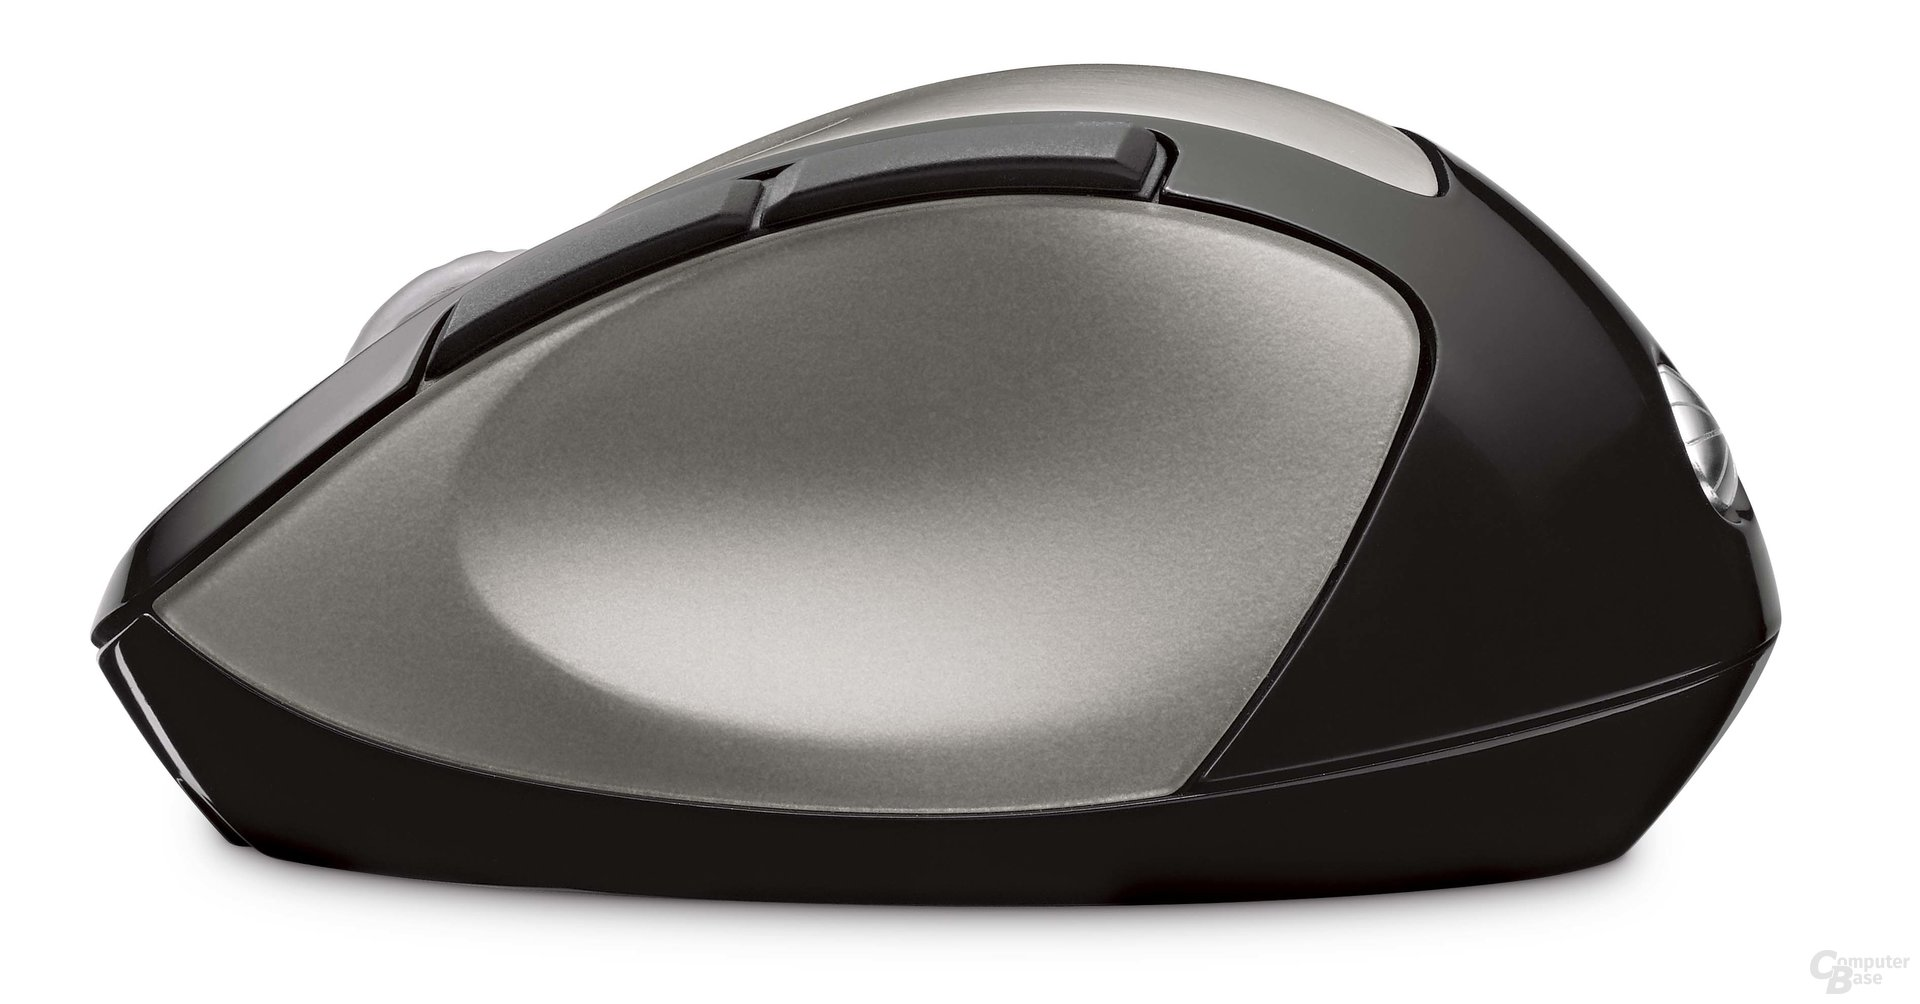 Mobile Memory Mouse 8000